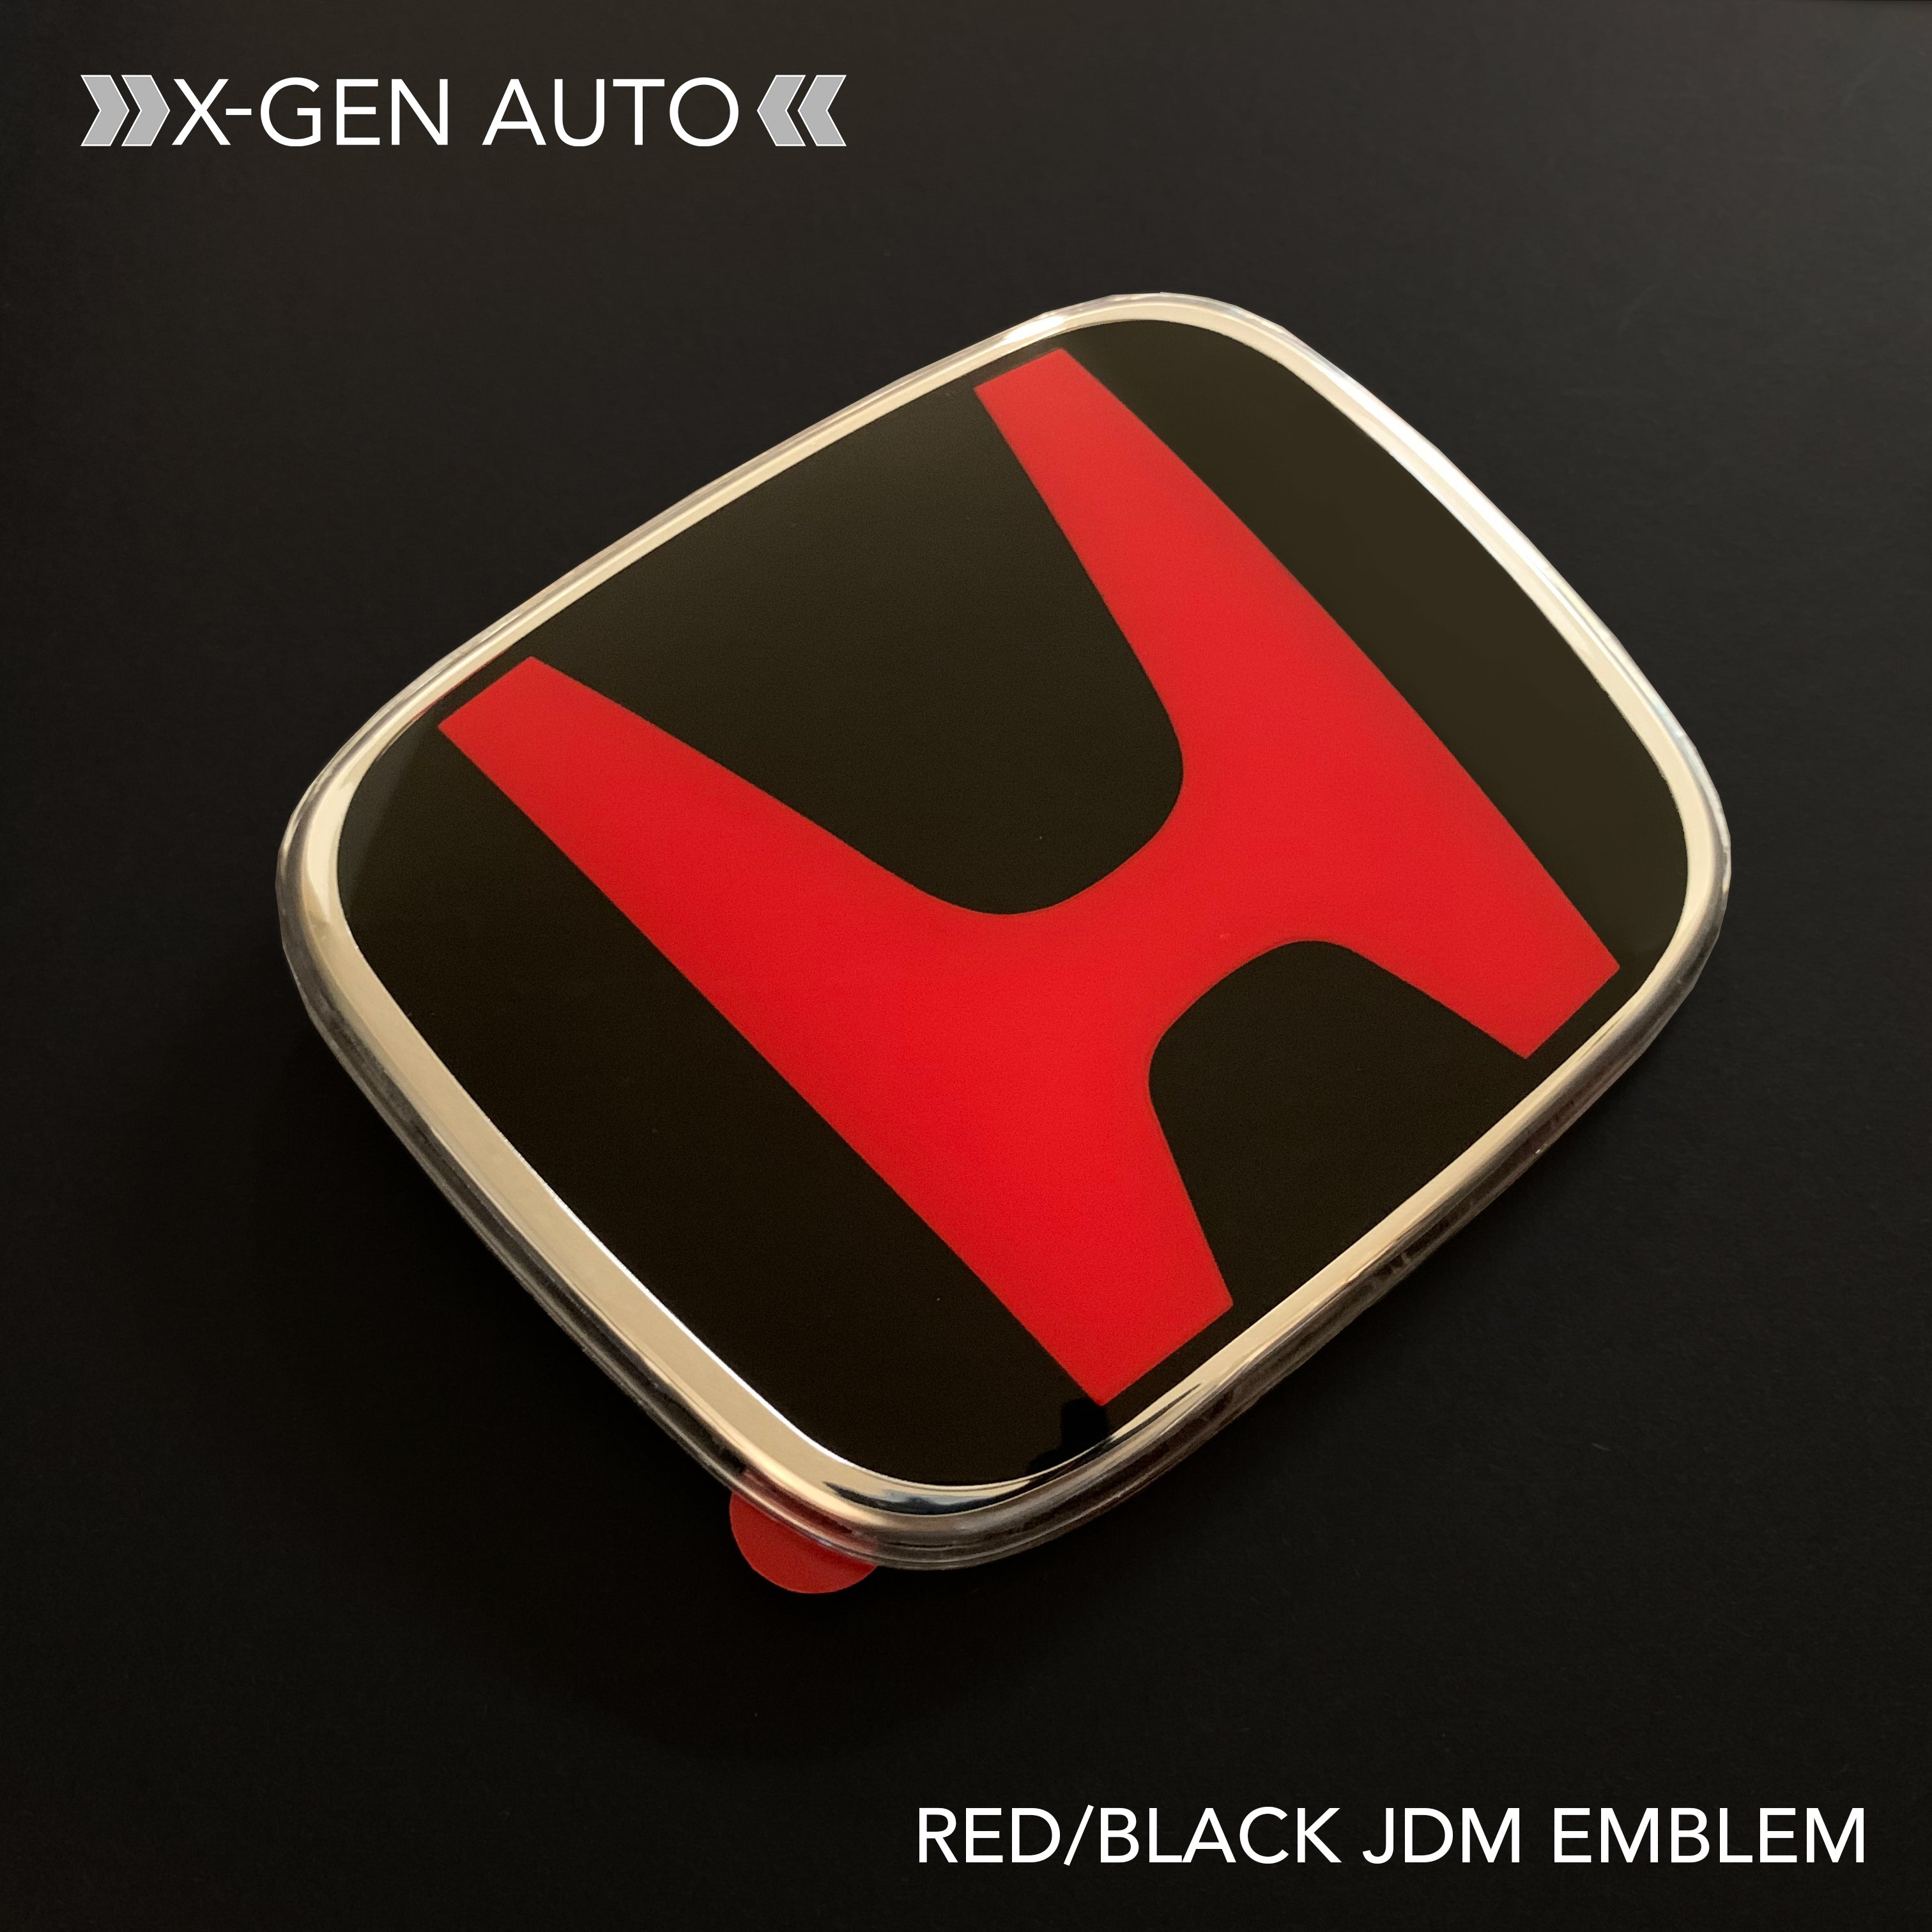 [ACCORD X] JDM EMBLEM SETS